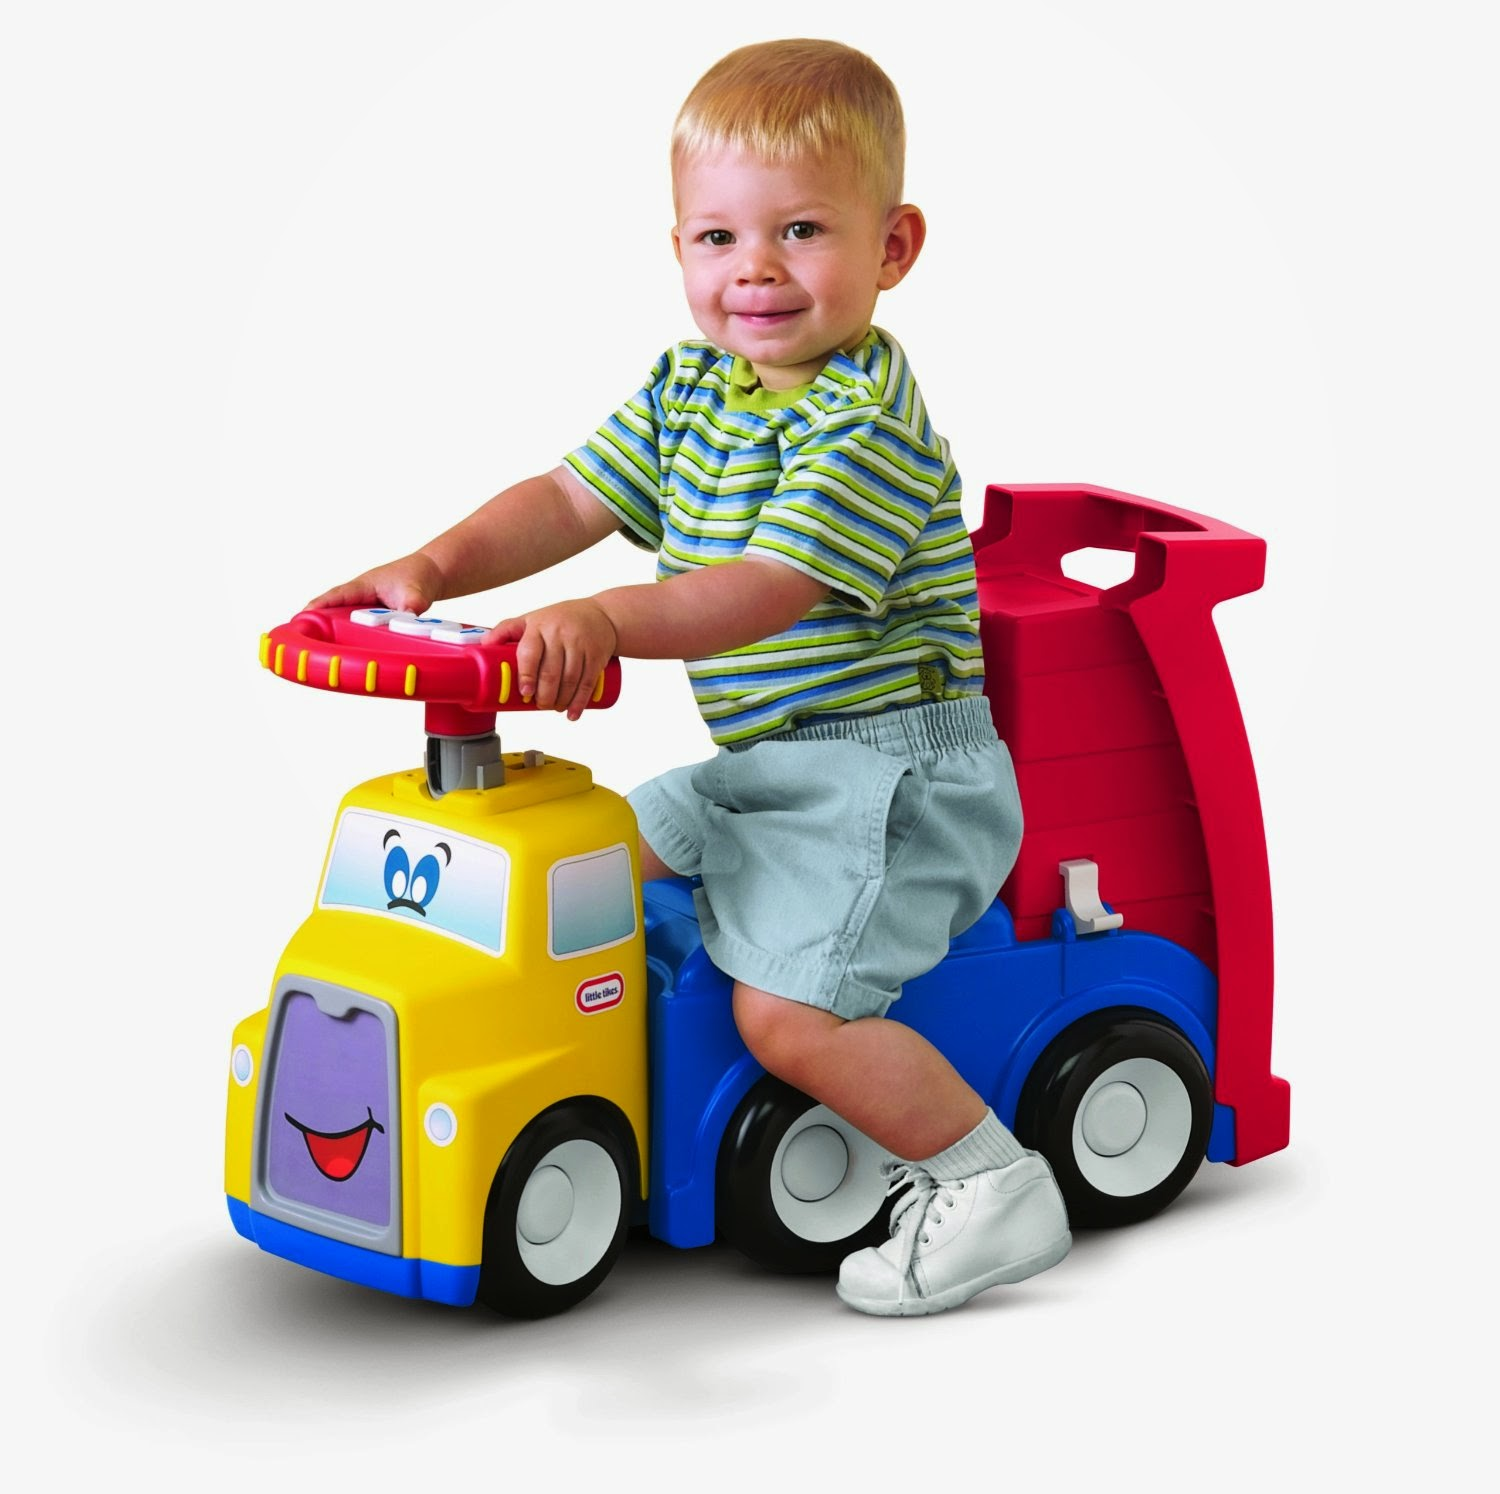 Ride On Toys For Toddlers : Toddler approved favorite ride on toys for toddlers